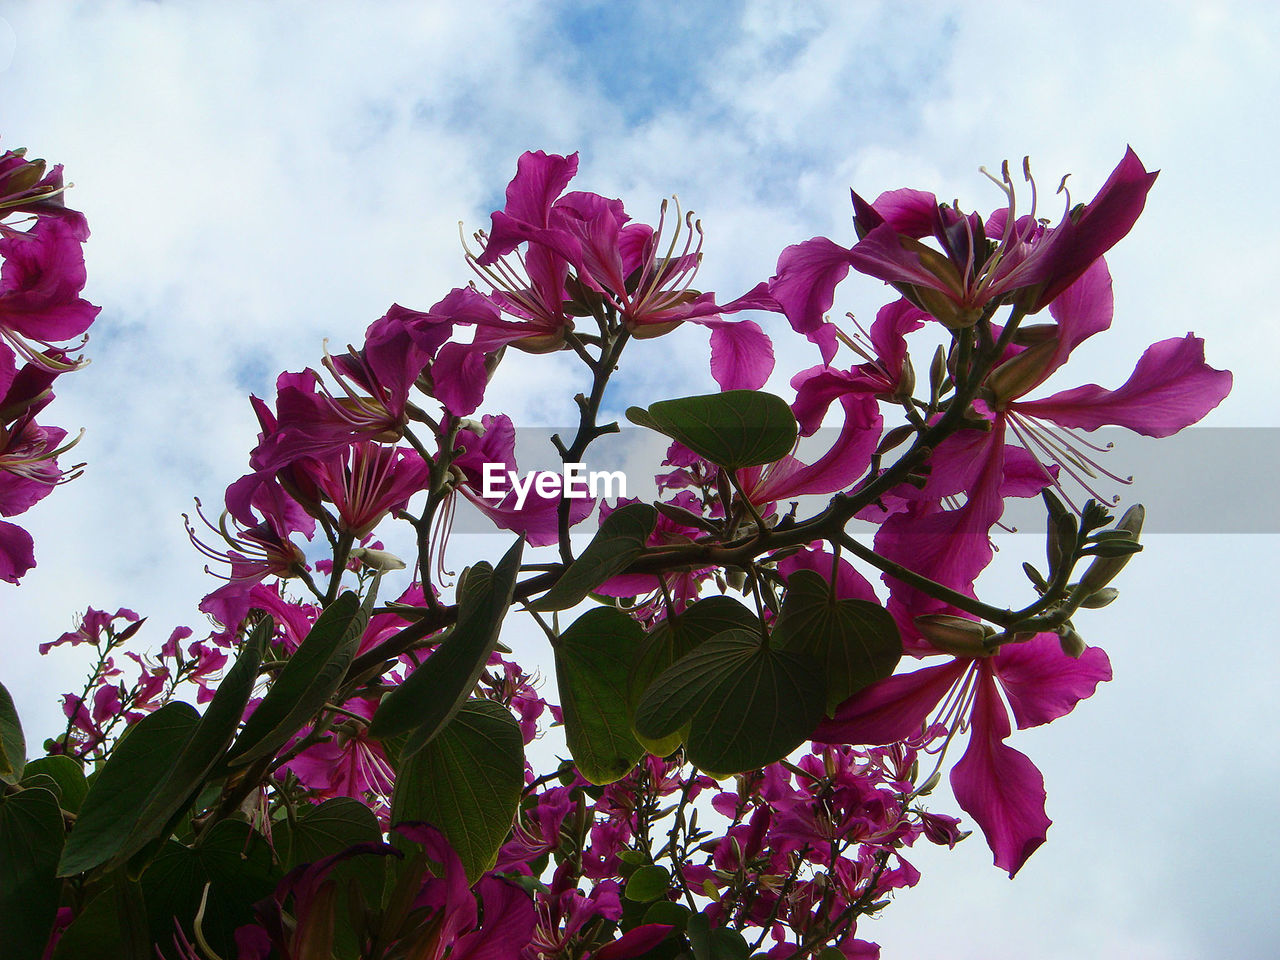 flowering plant, flower, plant, sky, freshness, growth, fragility, vulnerability, beauty in nature, cloud - sky, nature, petal, low angle view, pink color, day, close-up, flower head, plant part, inflorescence, no people, outdoors, springtime, purple, cherry blossom